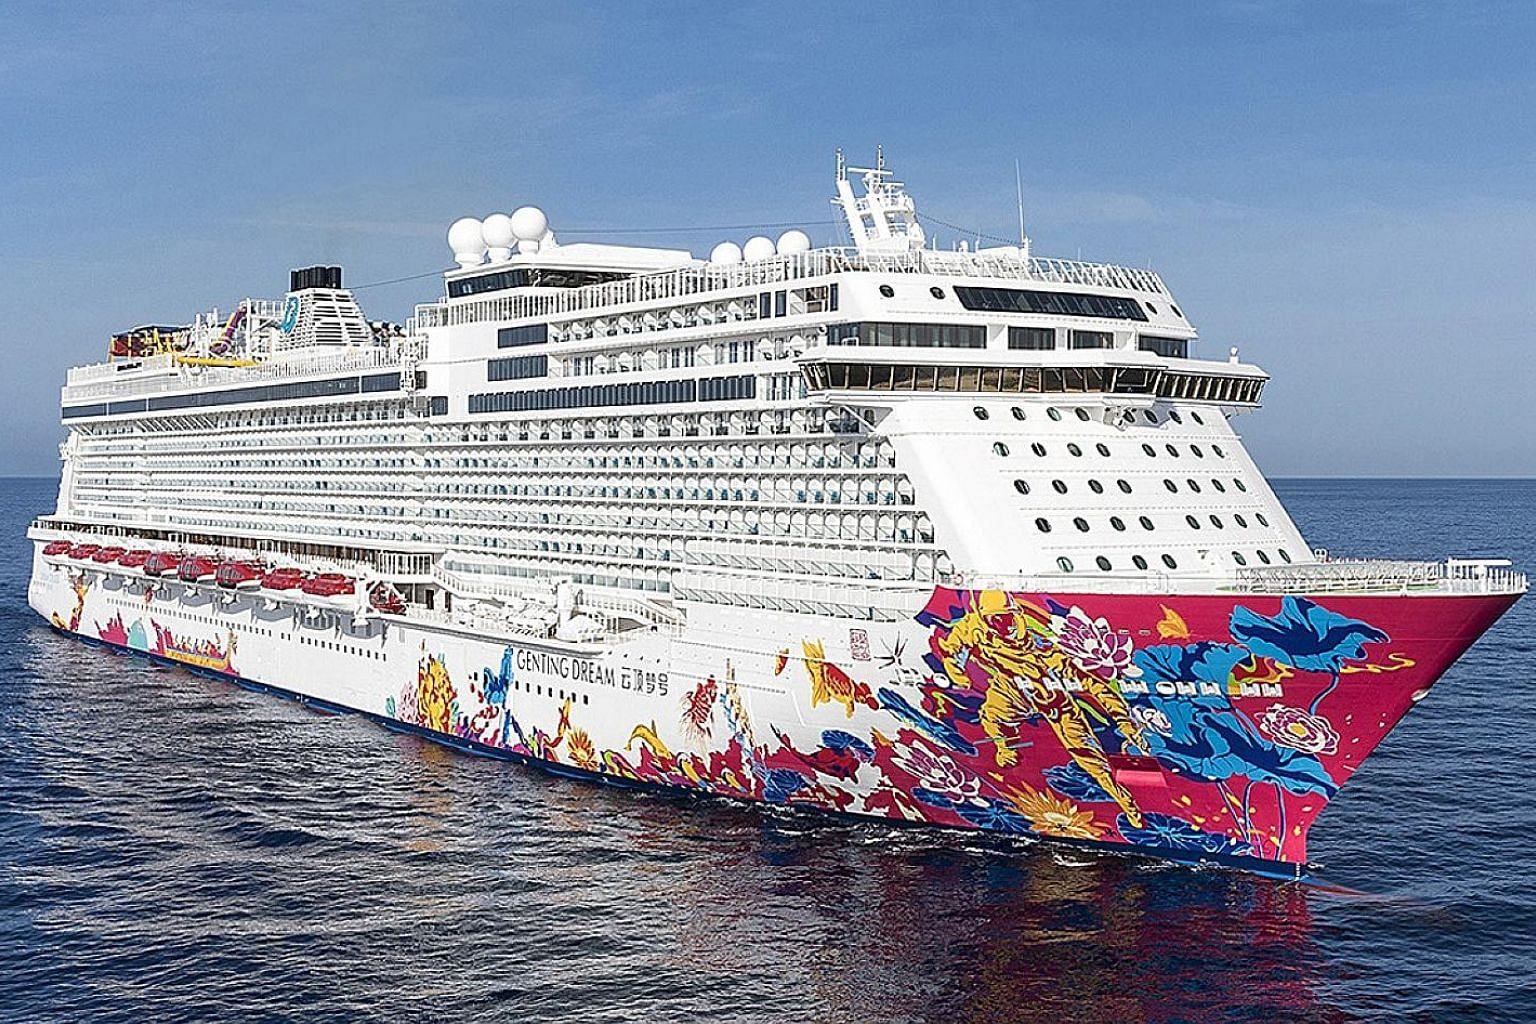 Mr Goh Hai Peng, a retired electrician travelling alone, boarded the Genting Dream cruise ship on Aug 4. It was only on Aug 7, when he did not disembark after the ship returned to Singapore, that the crew discovered Mr Goh was no longer on board.